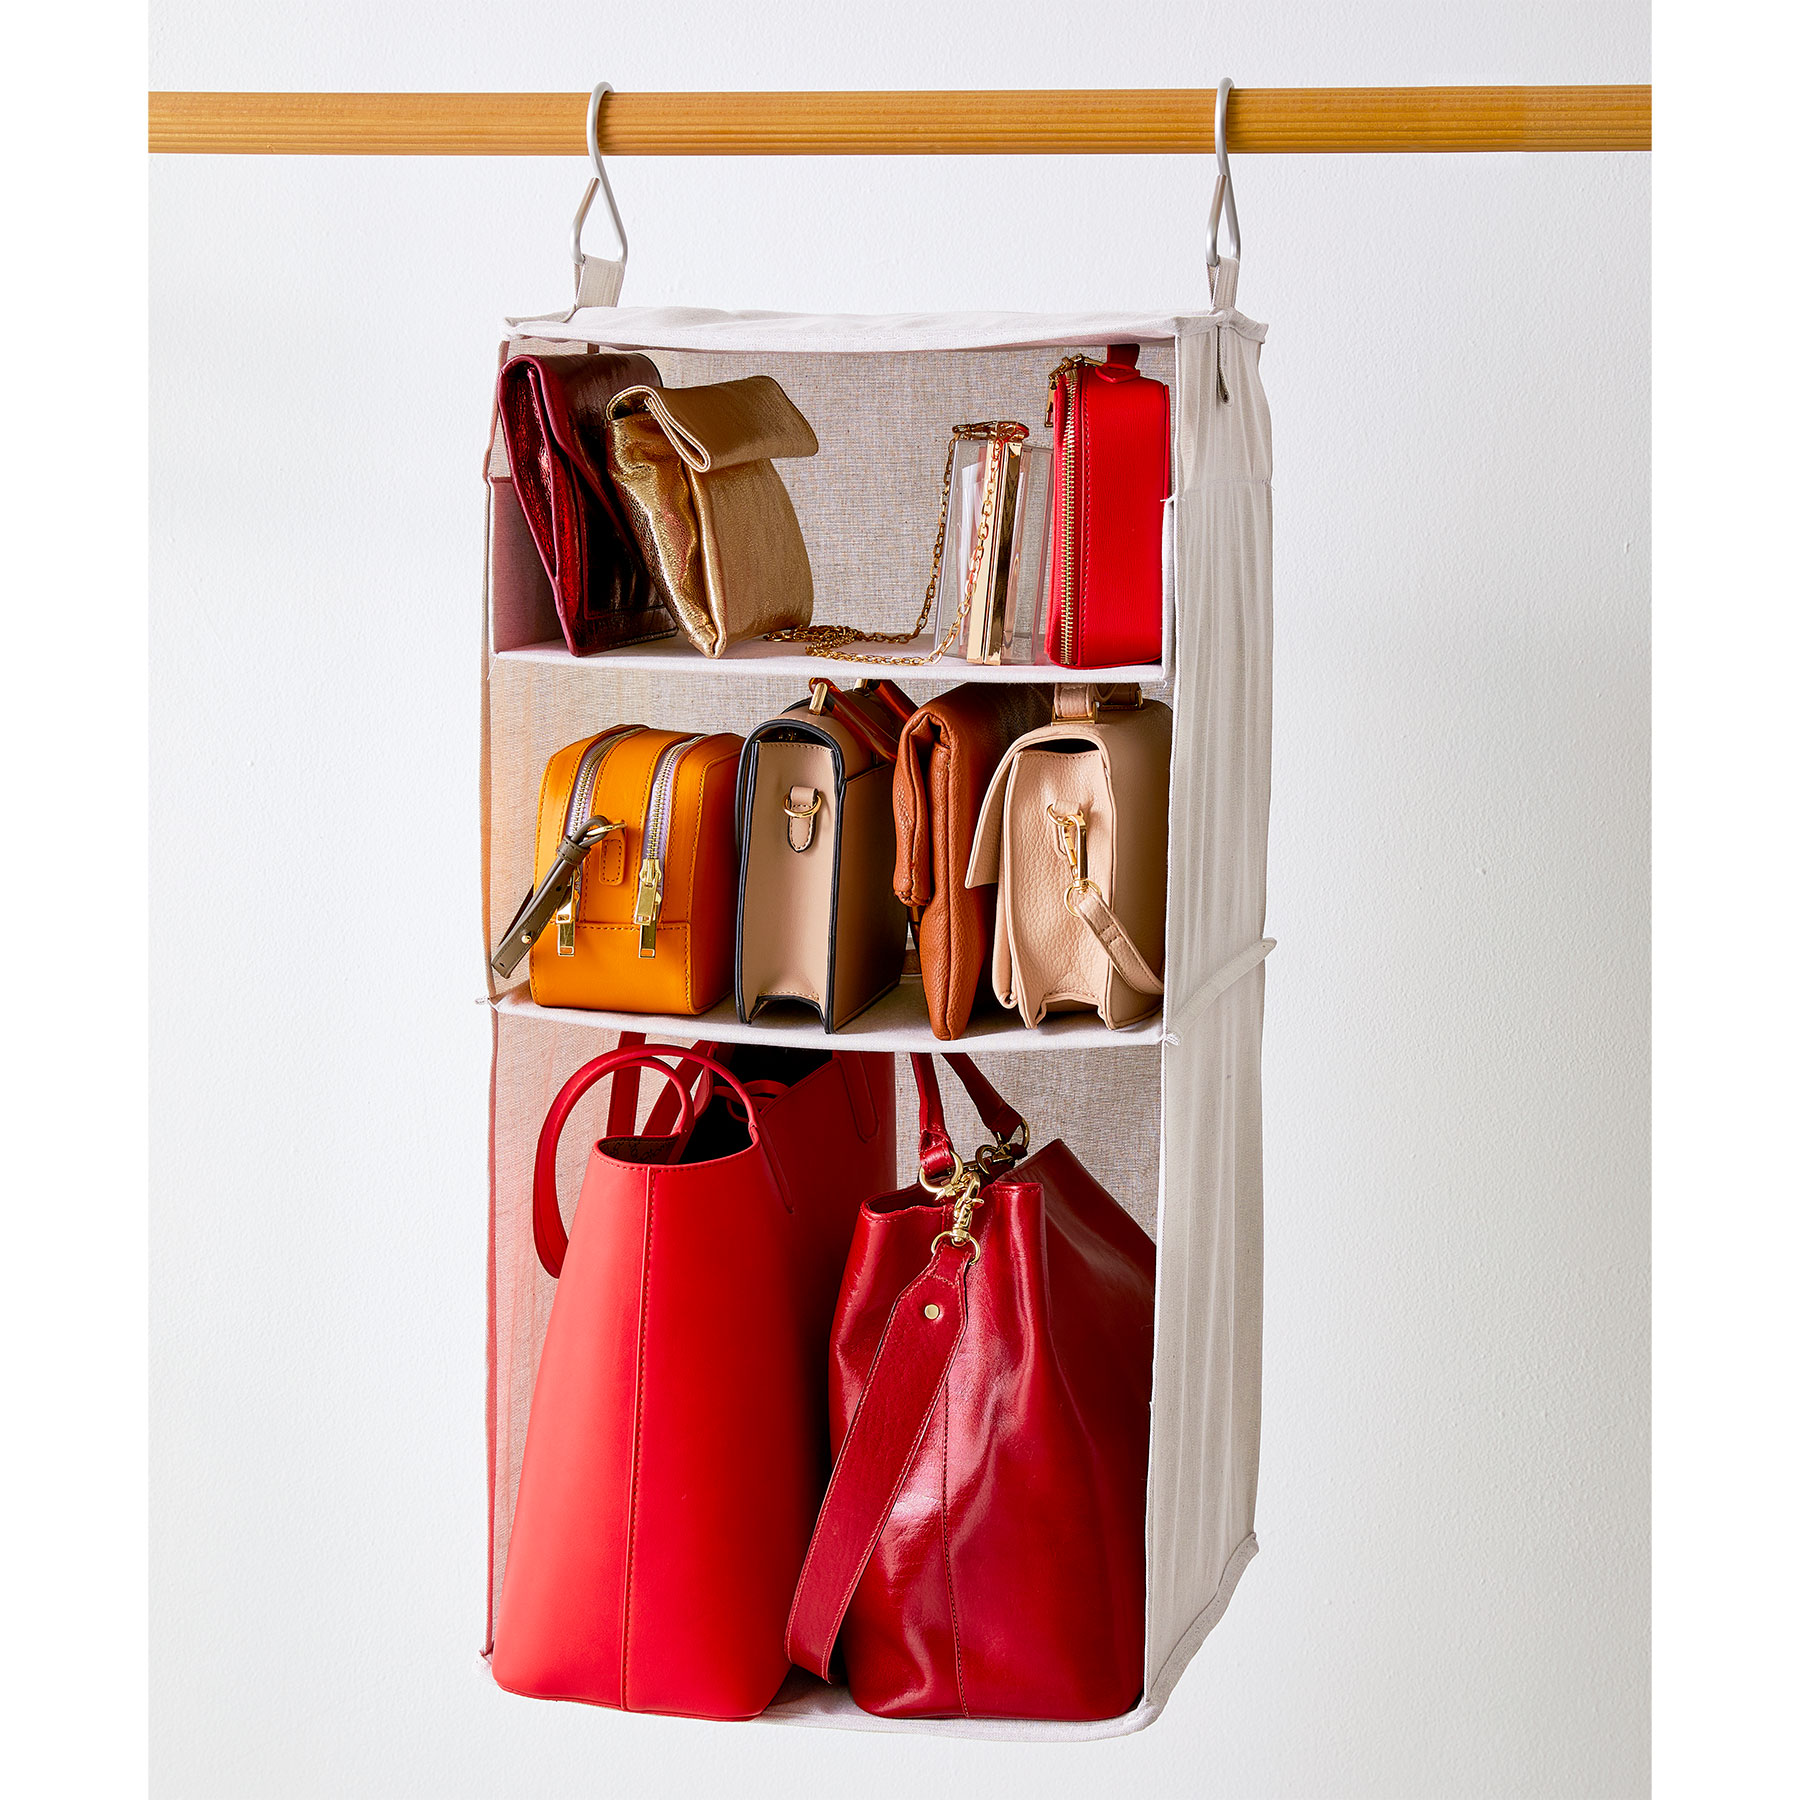 How to Organize Bags: Hang Them Up